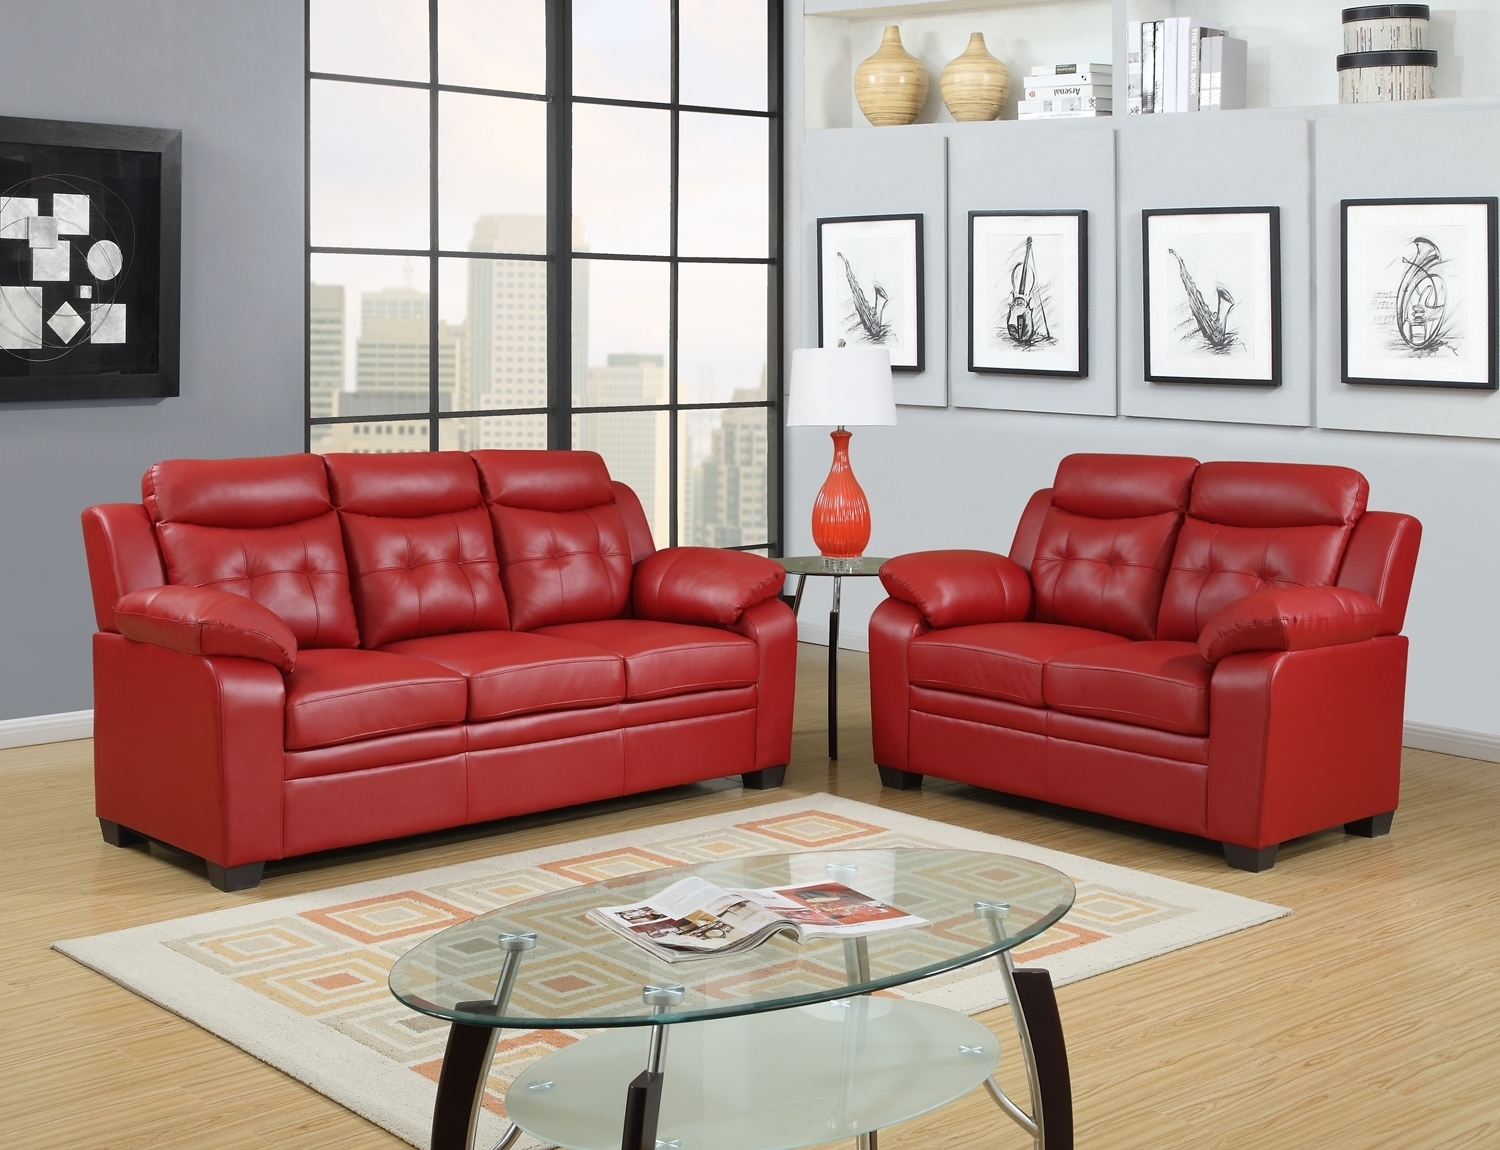 Red Leather Couches And Loveseats Pertaining To Latest Remarkable Red Leather Sofas And Loveseats Pics Ideas – Surripui (View 4 of 15)